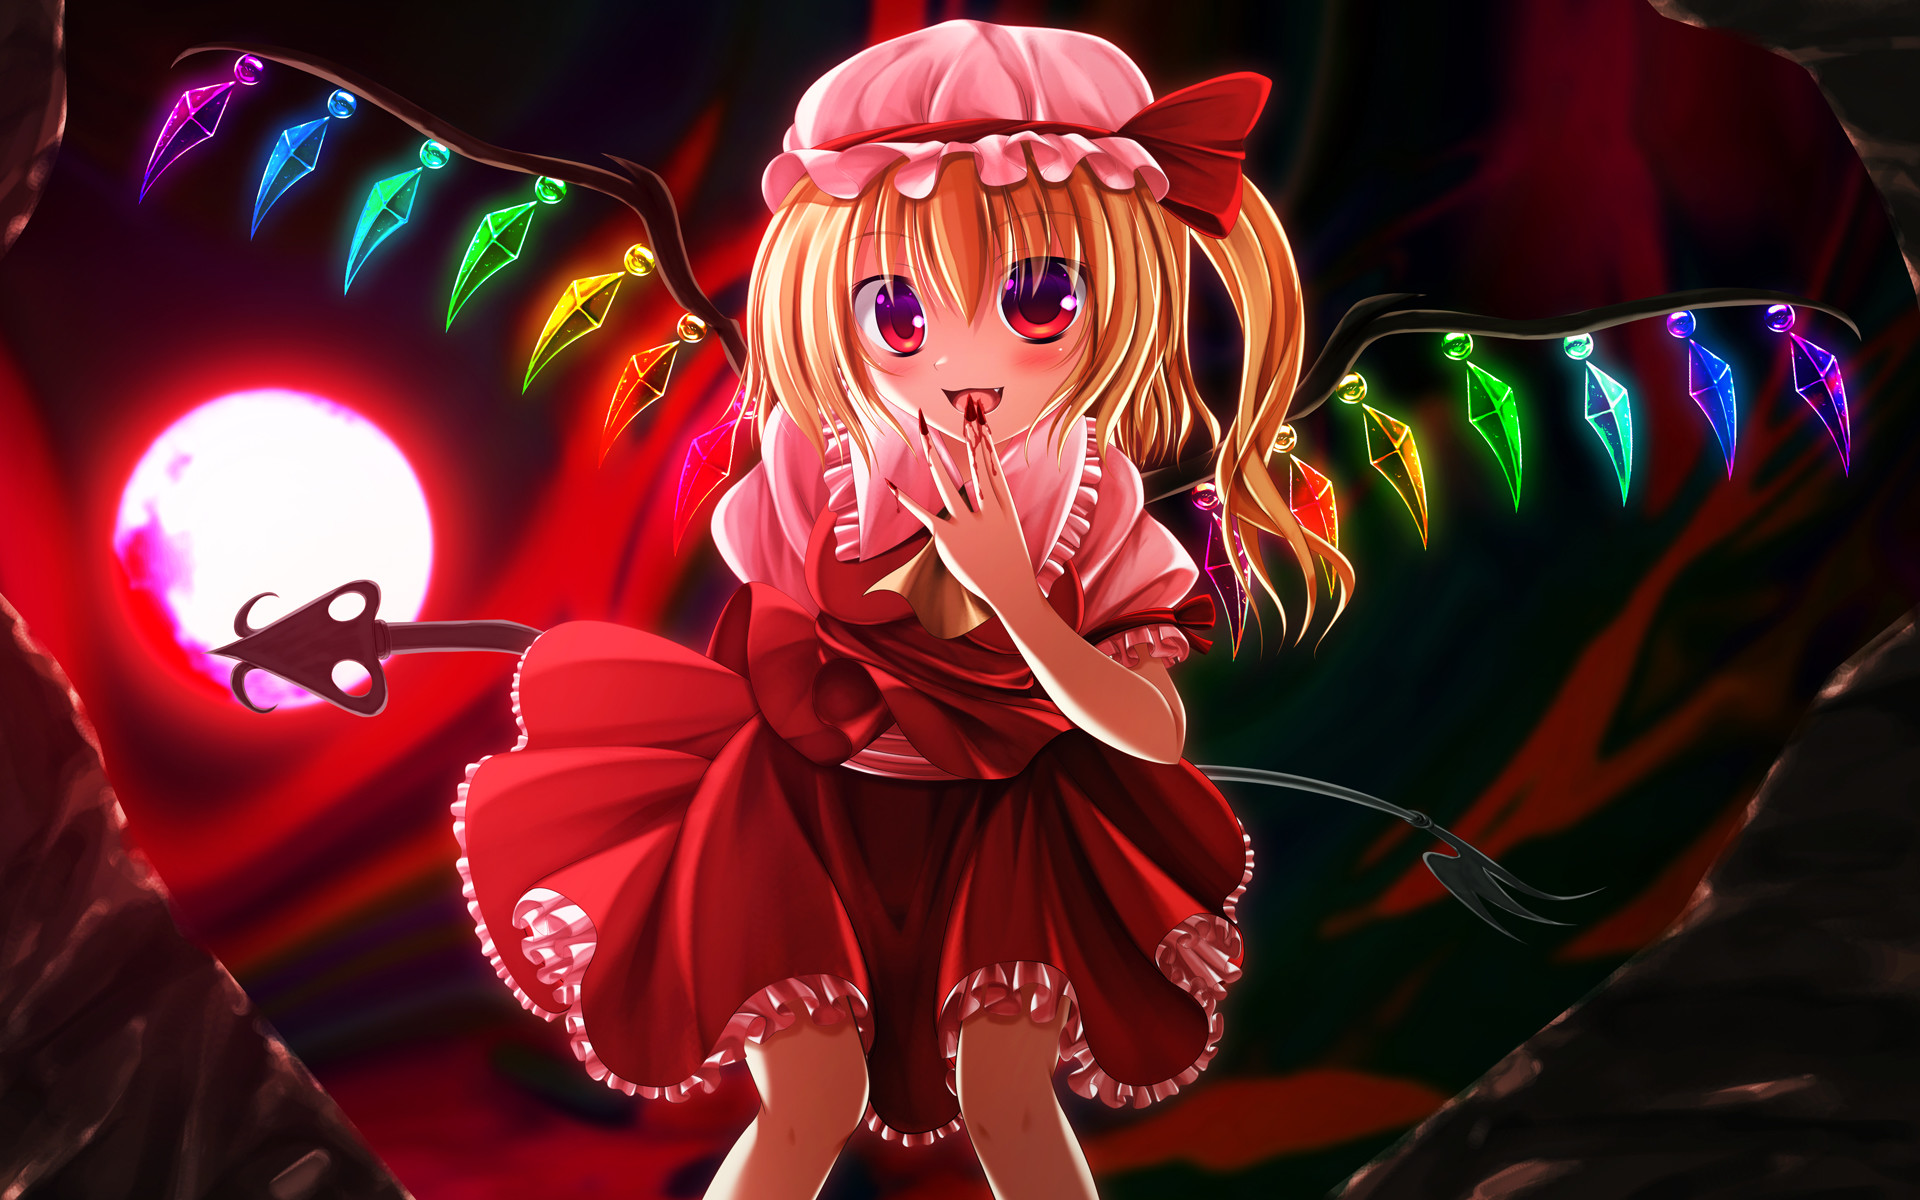 Cute Zootopia Wallpaper Phone Touhou Wallpapers 59 Images